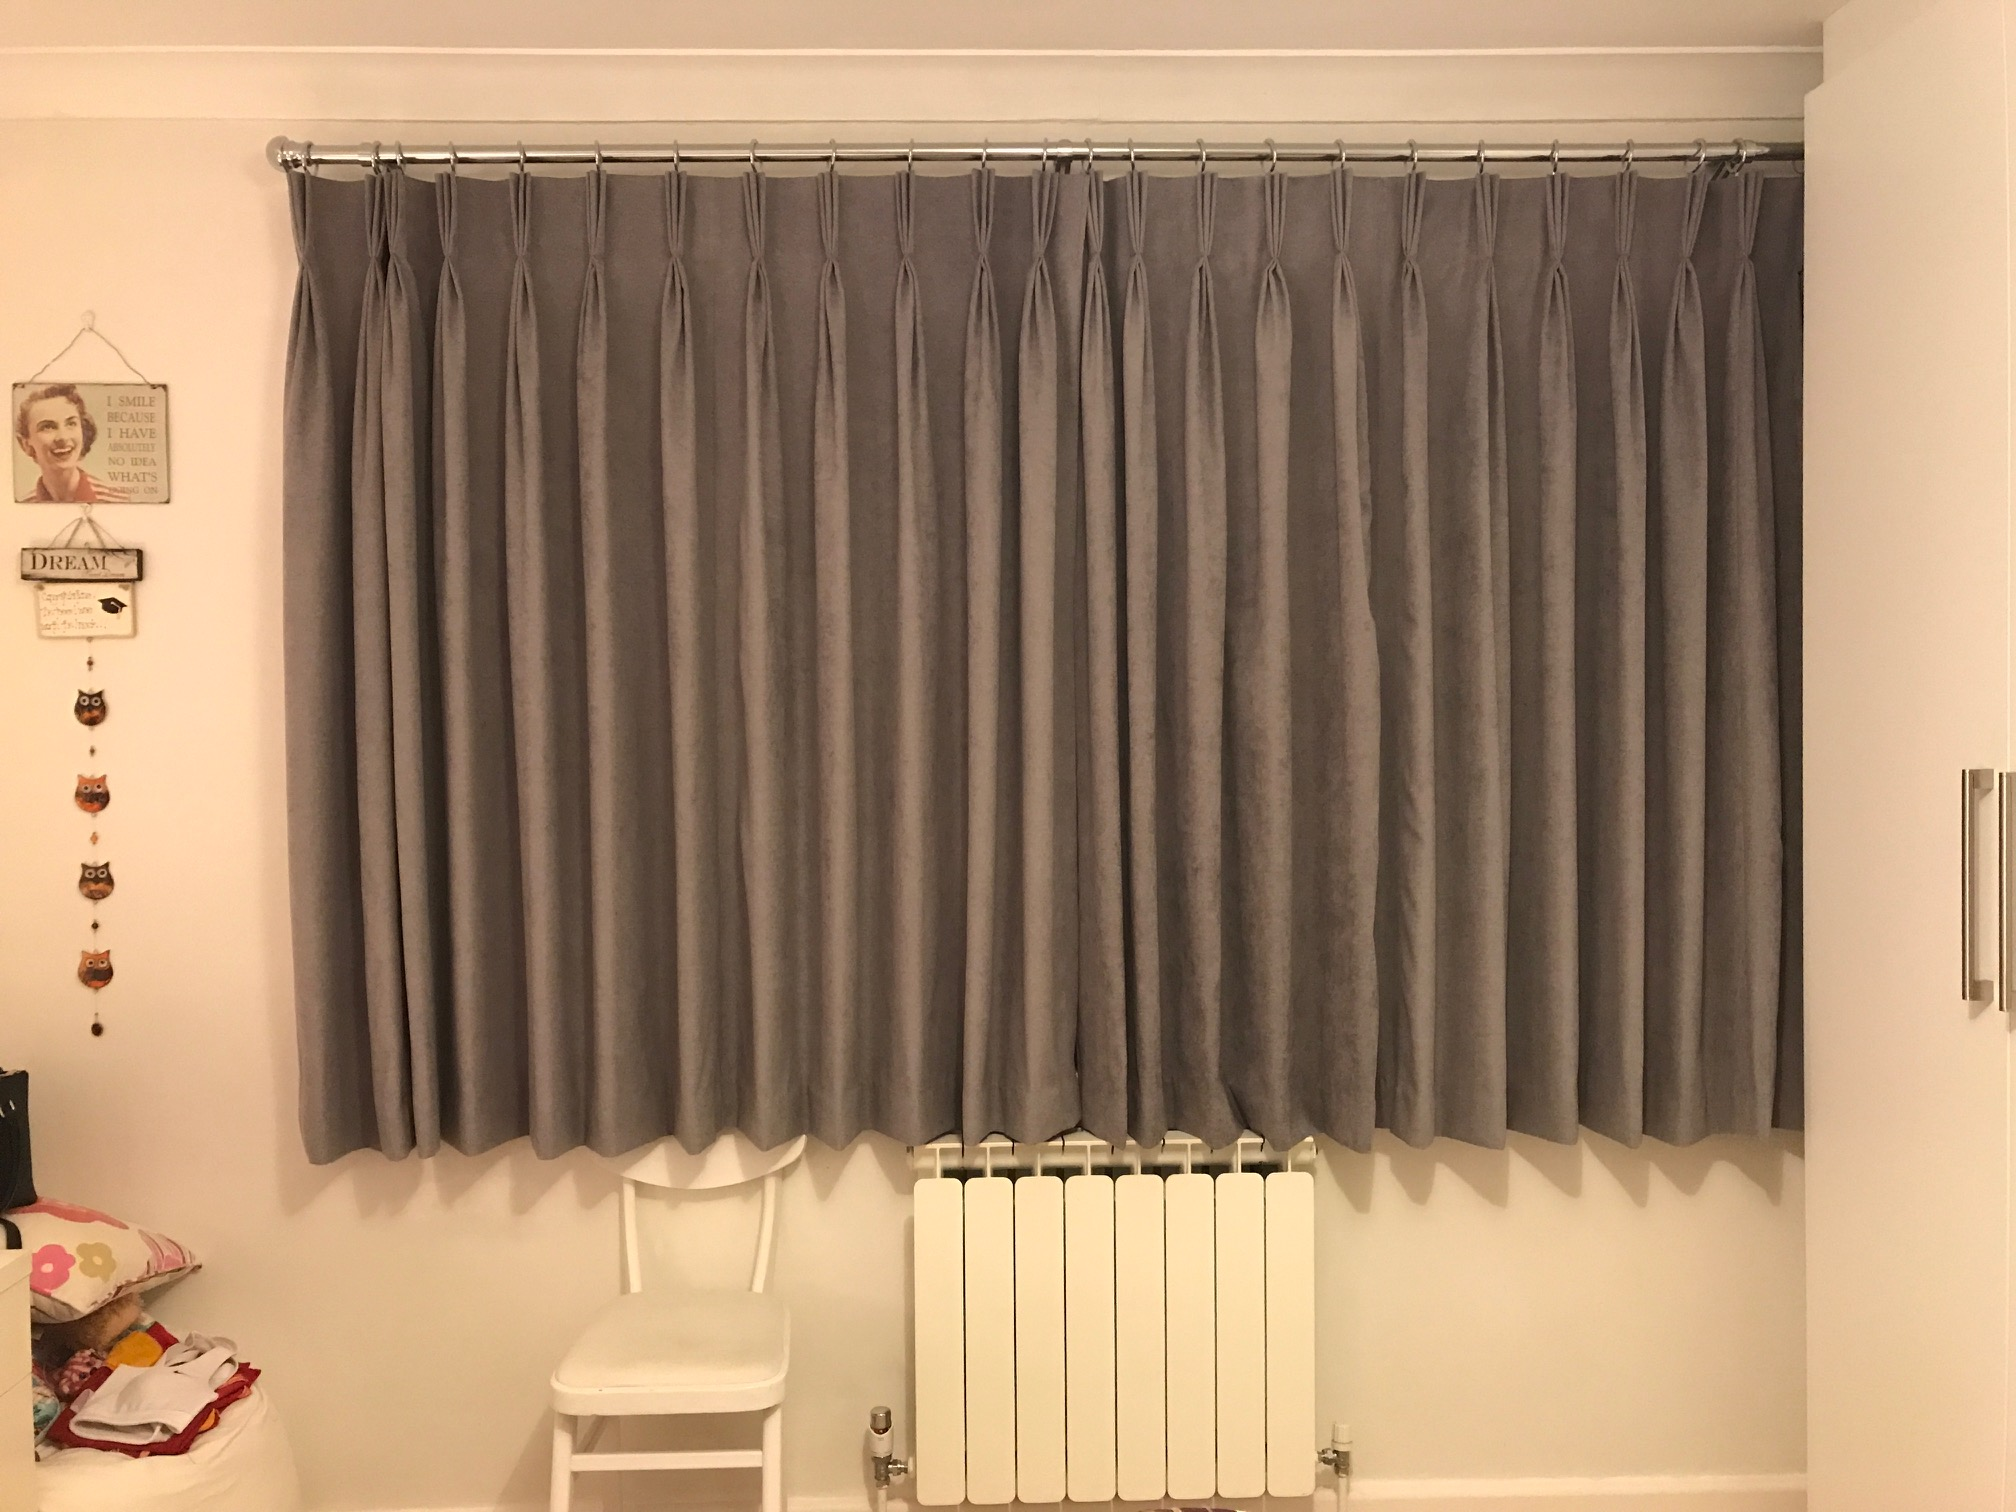 Sonia Ferri Made To Measure Curtains In Rachel90